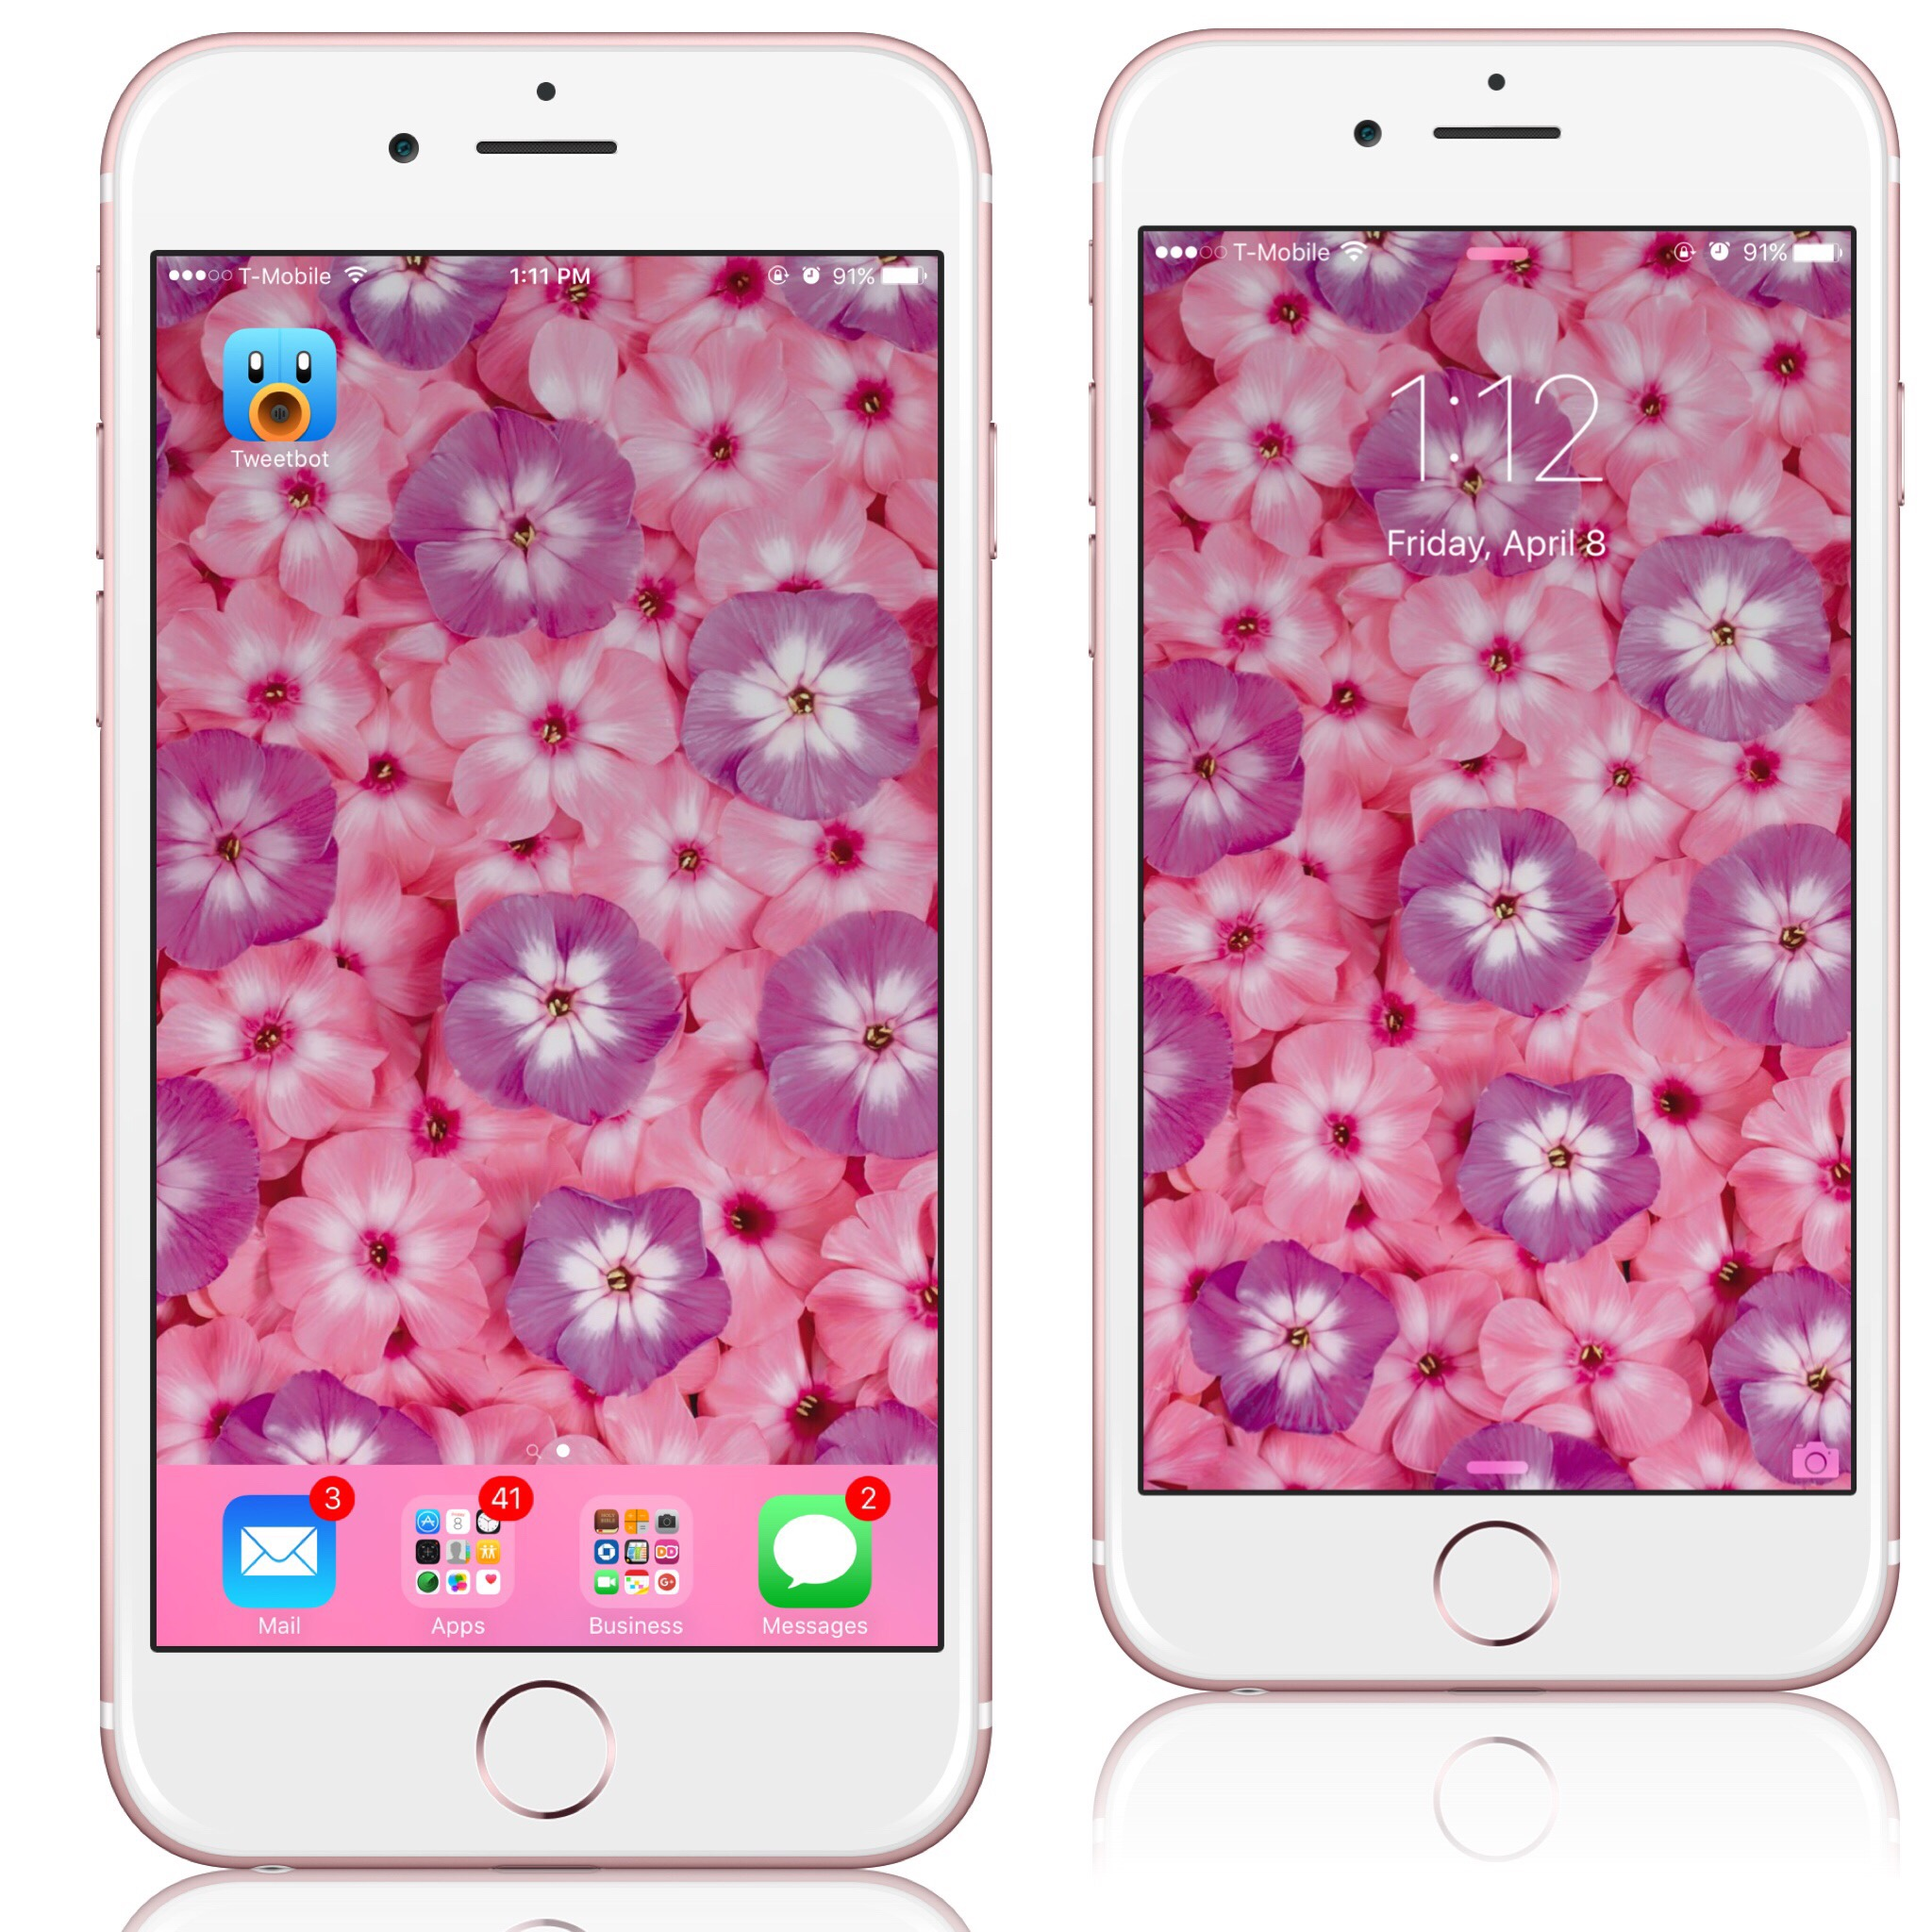 Styling Pink & Lavender Flowers Wallpaper On My IPhone 6s